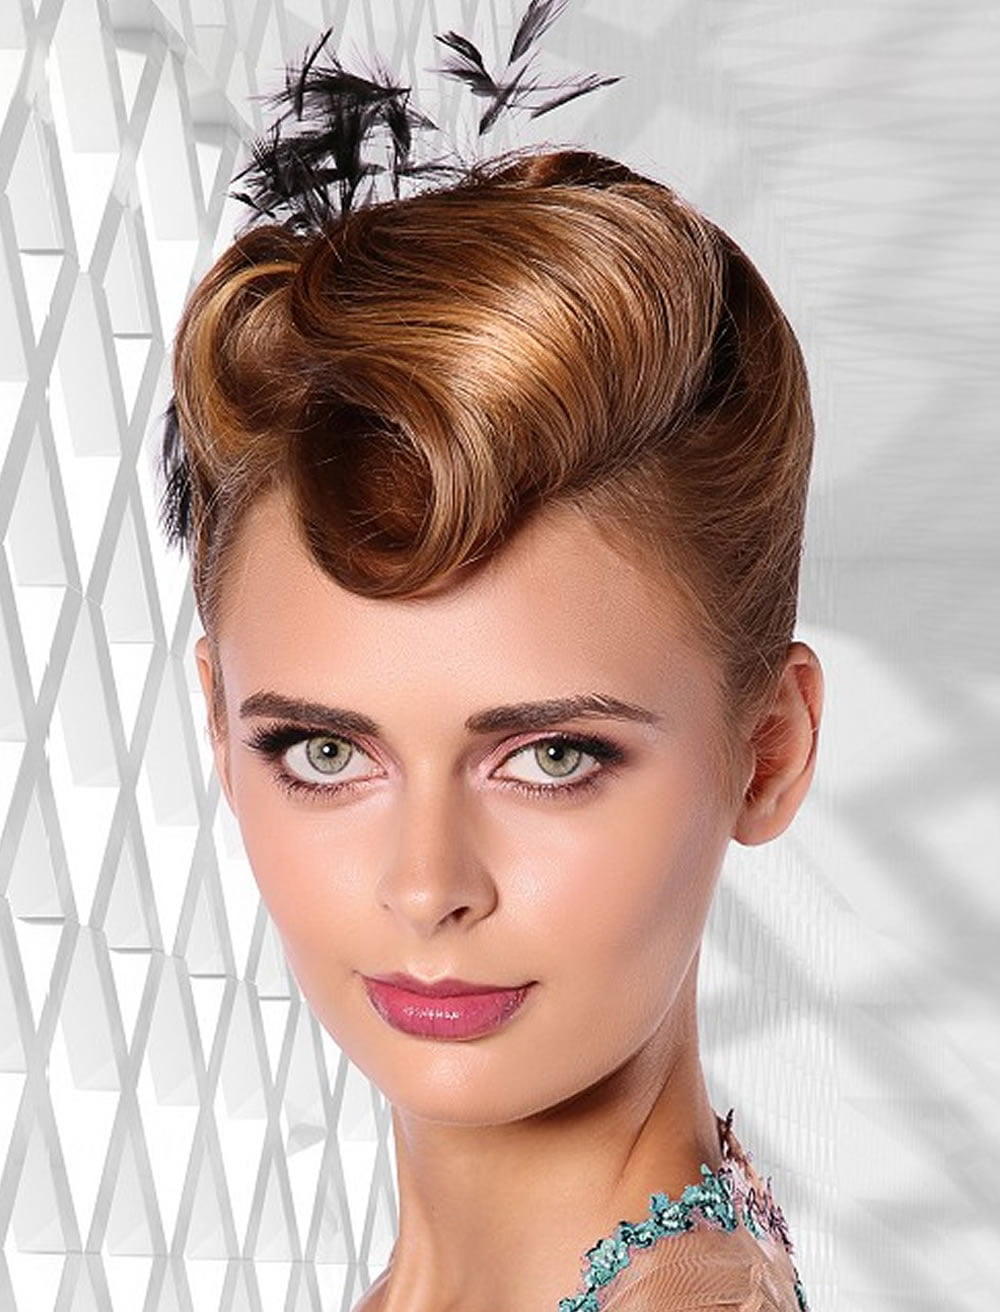 32 Perfect Updo Hairstyles for Prom 2017-2018 | Round ...